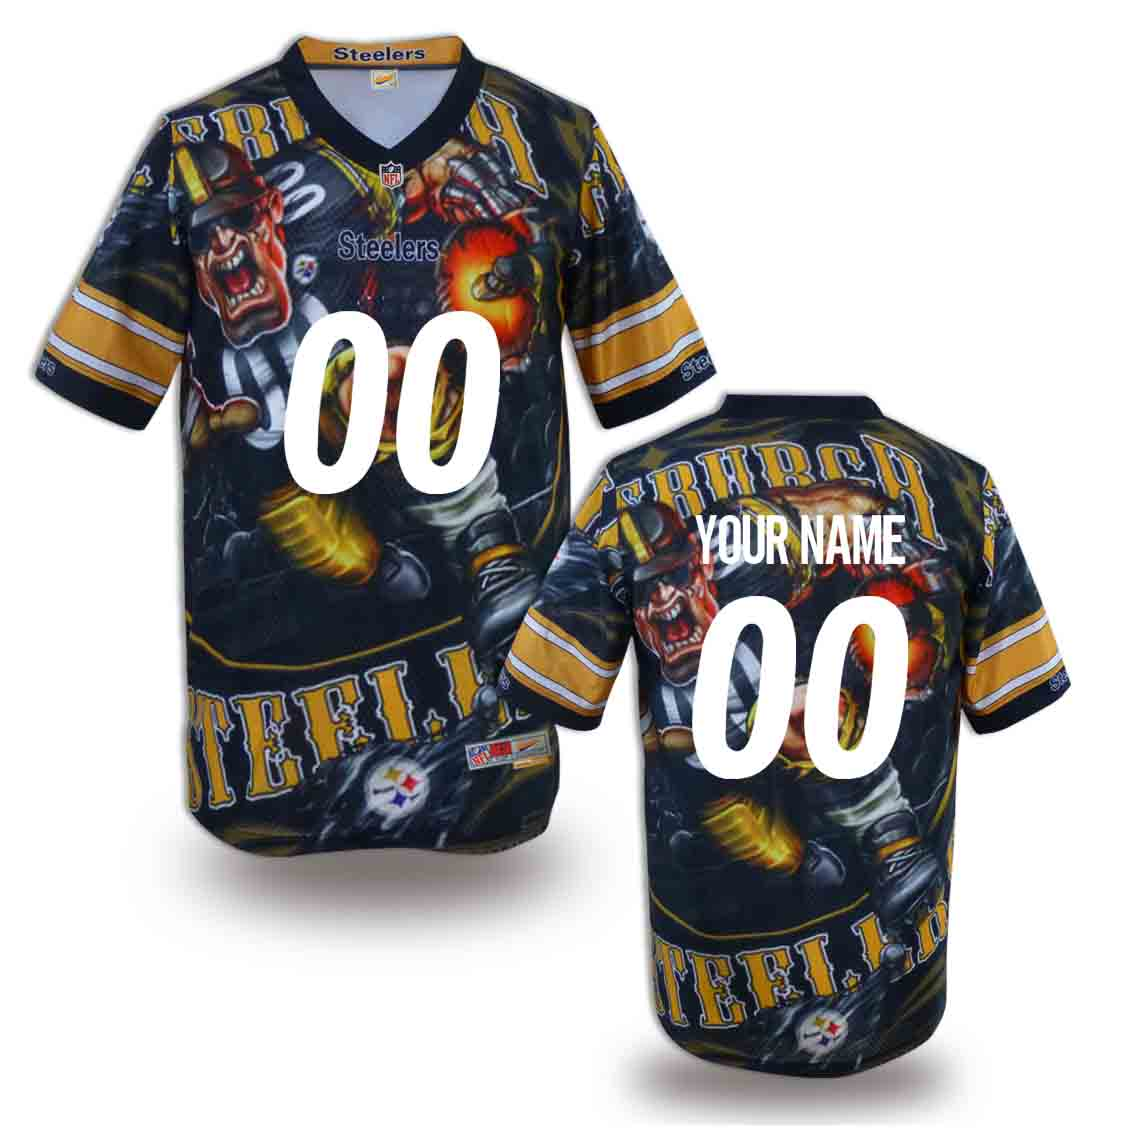 Nike Steelers Customized Fashion Stitched Jerseys07